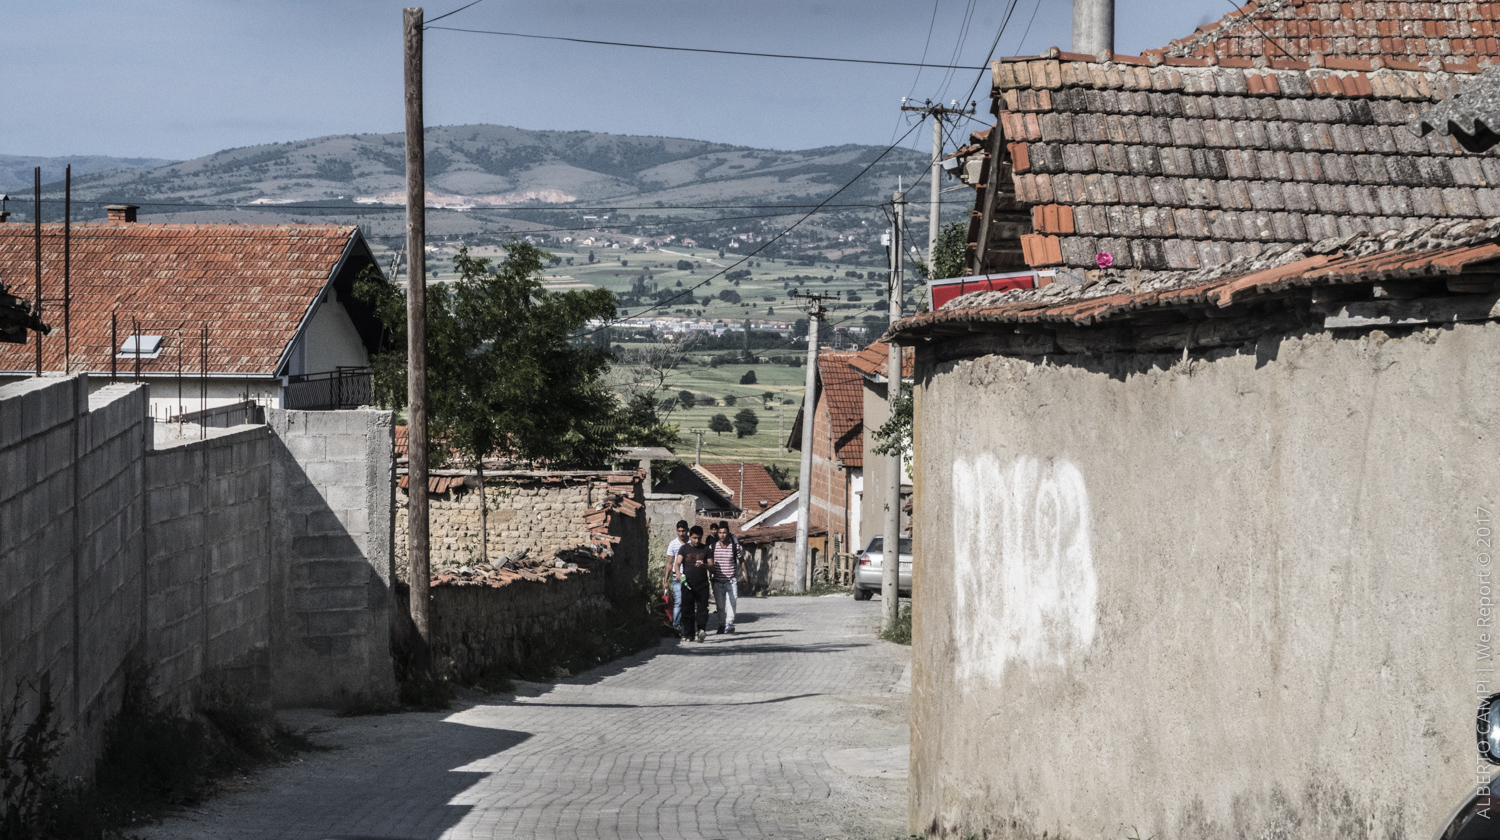 Refugees in the street of Vaksince, FYROM (Republic of Macedonia). 2015